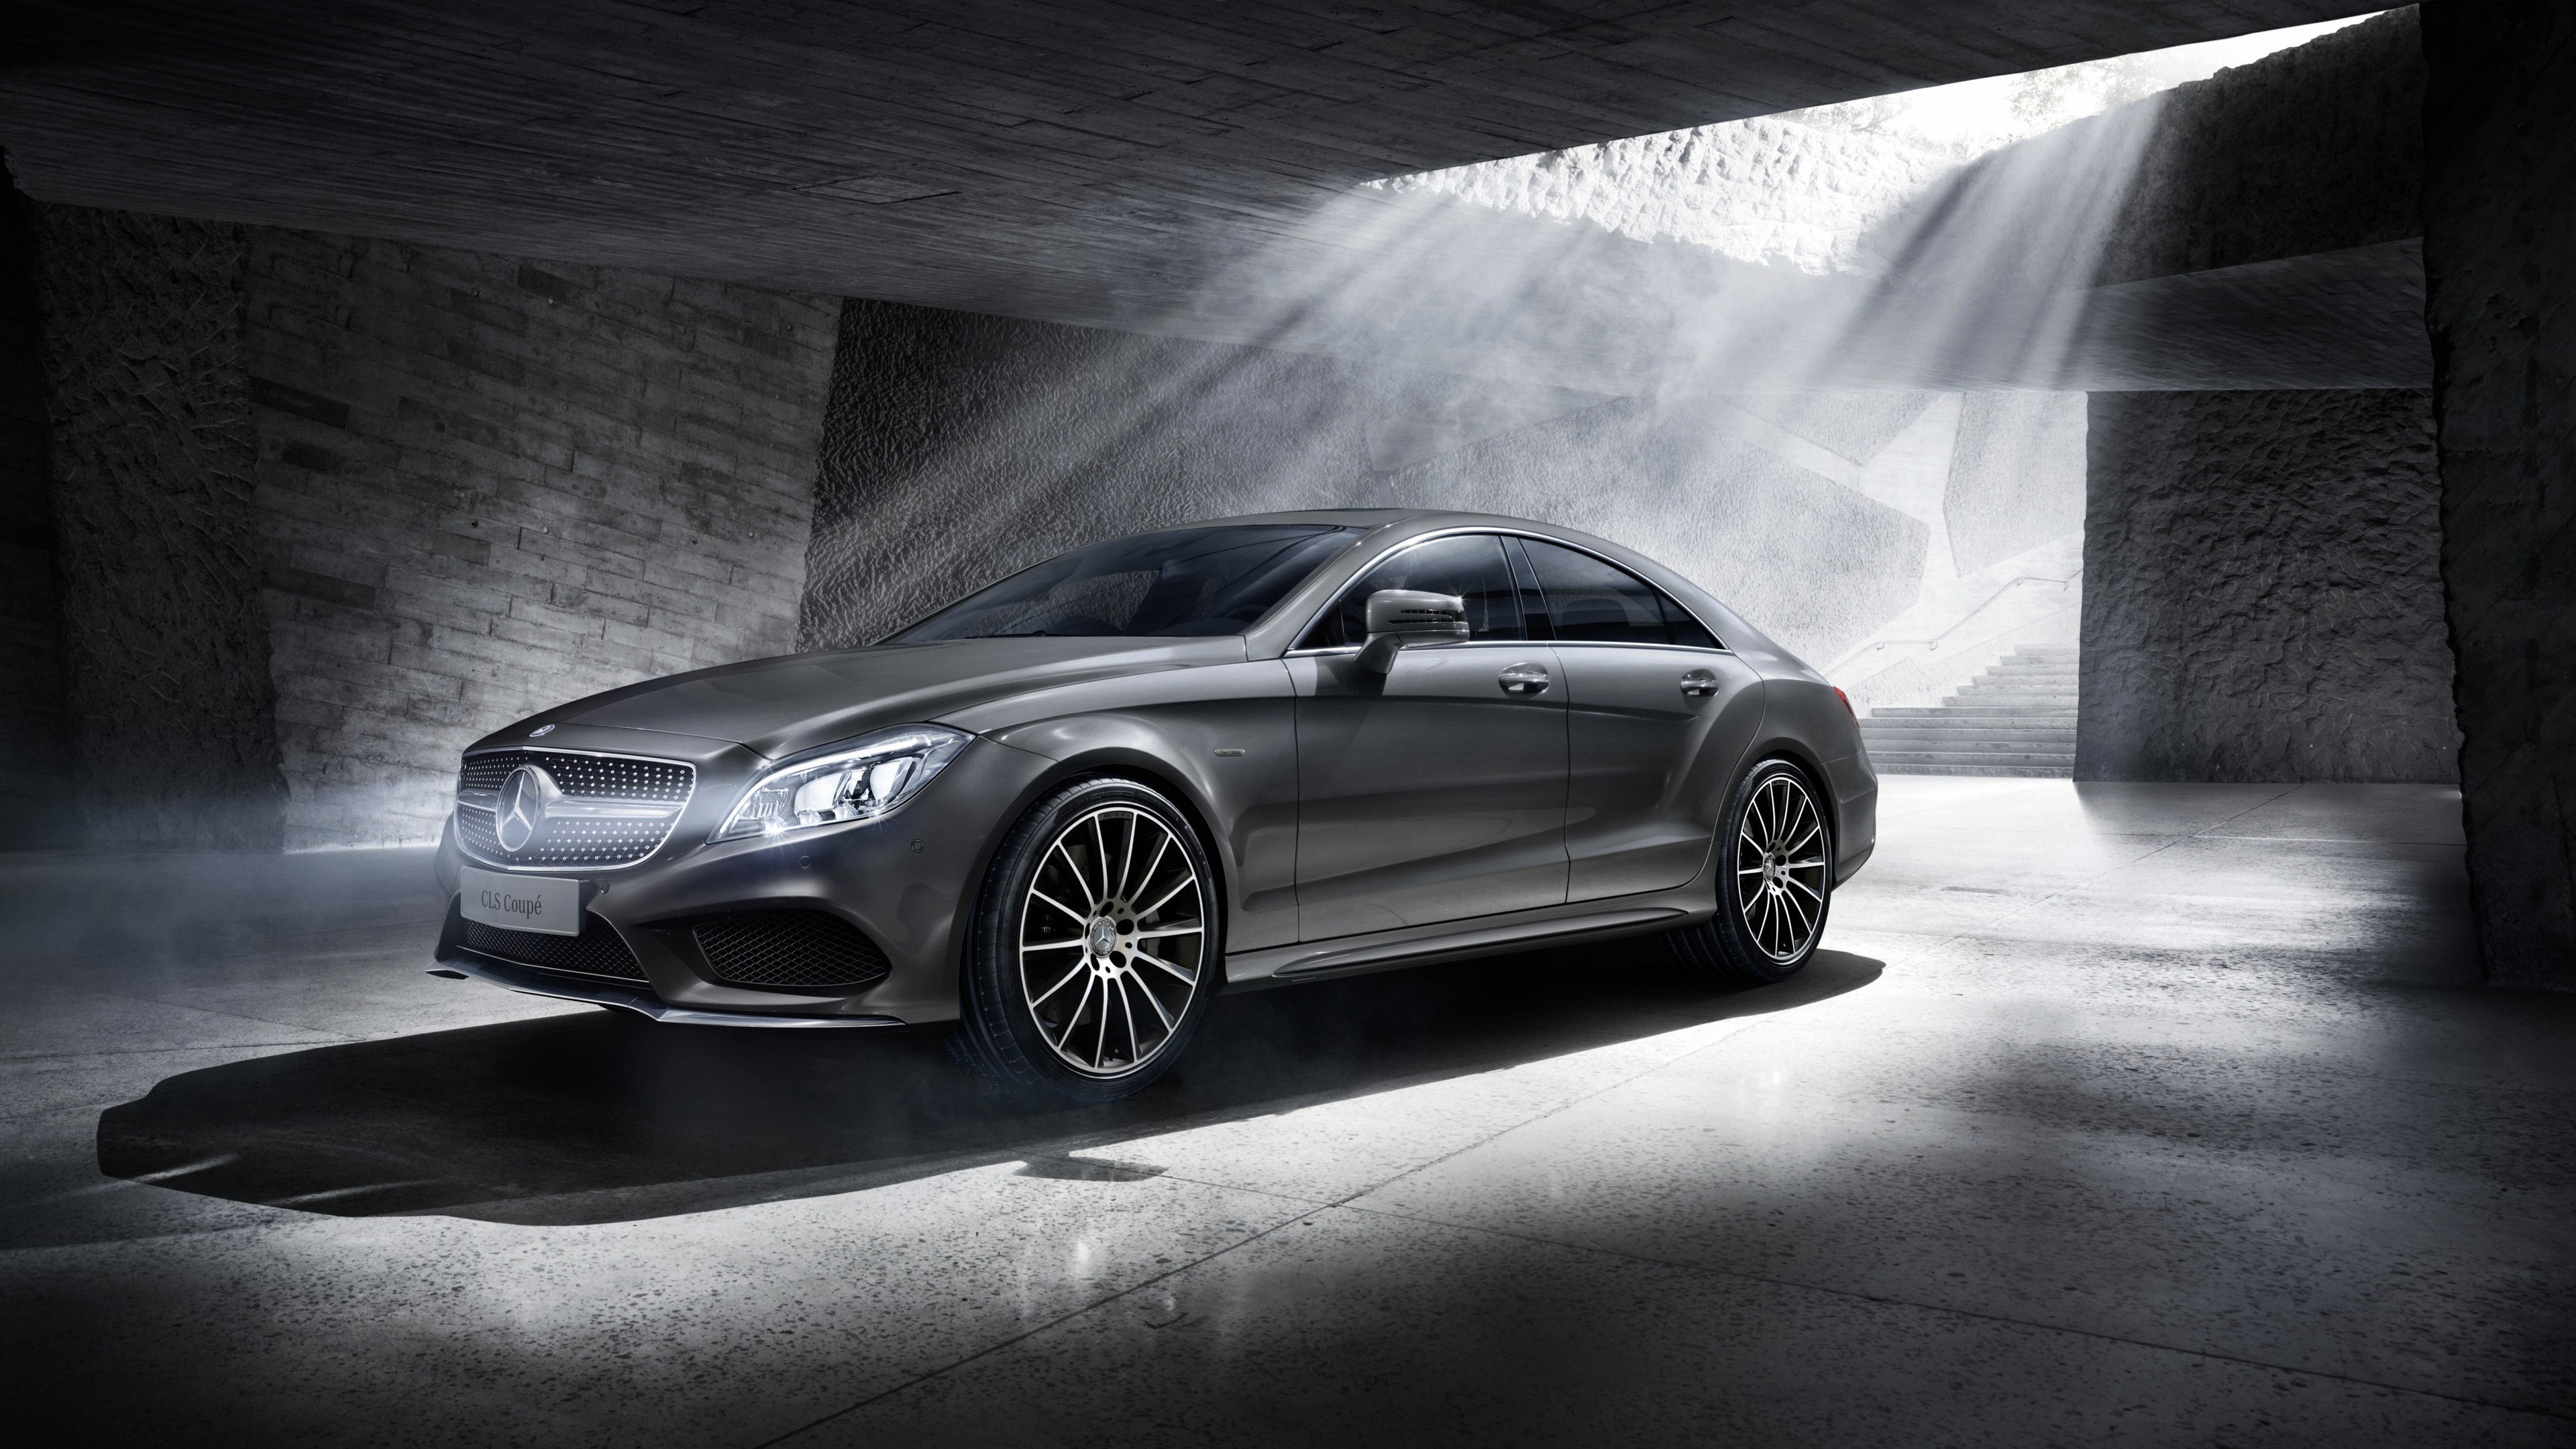 2016 mercedes benz cls coupe final edition wallpaper hd car wallpapers id 6845. Black Bedroom Furniture Sets. Home Design Ideas